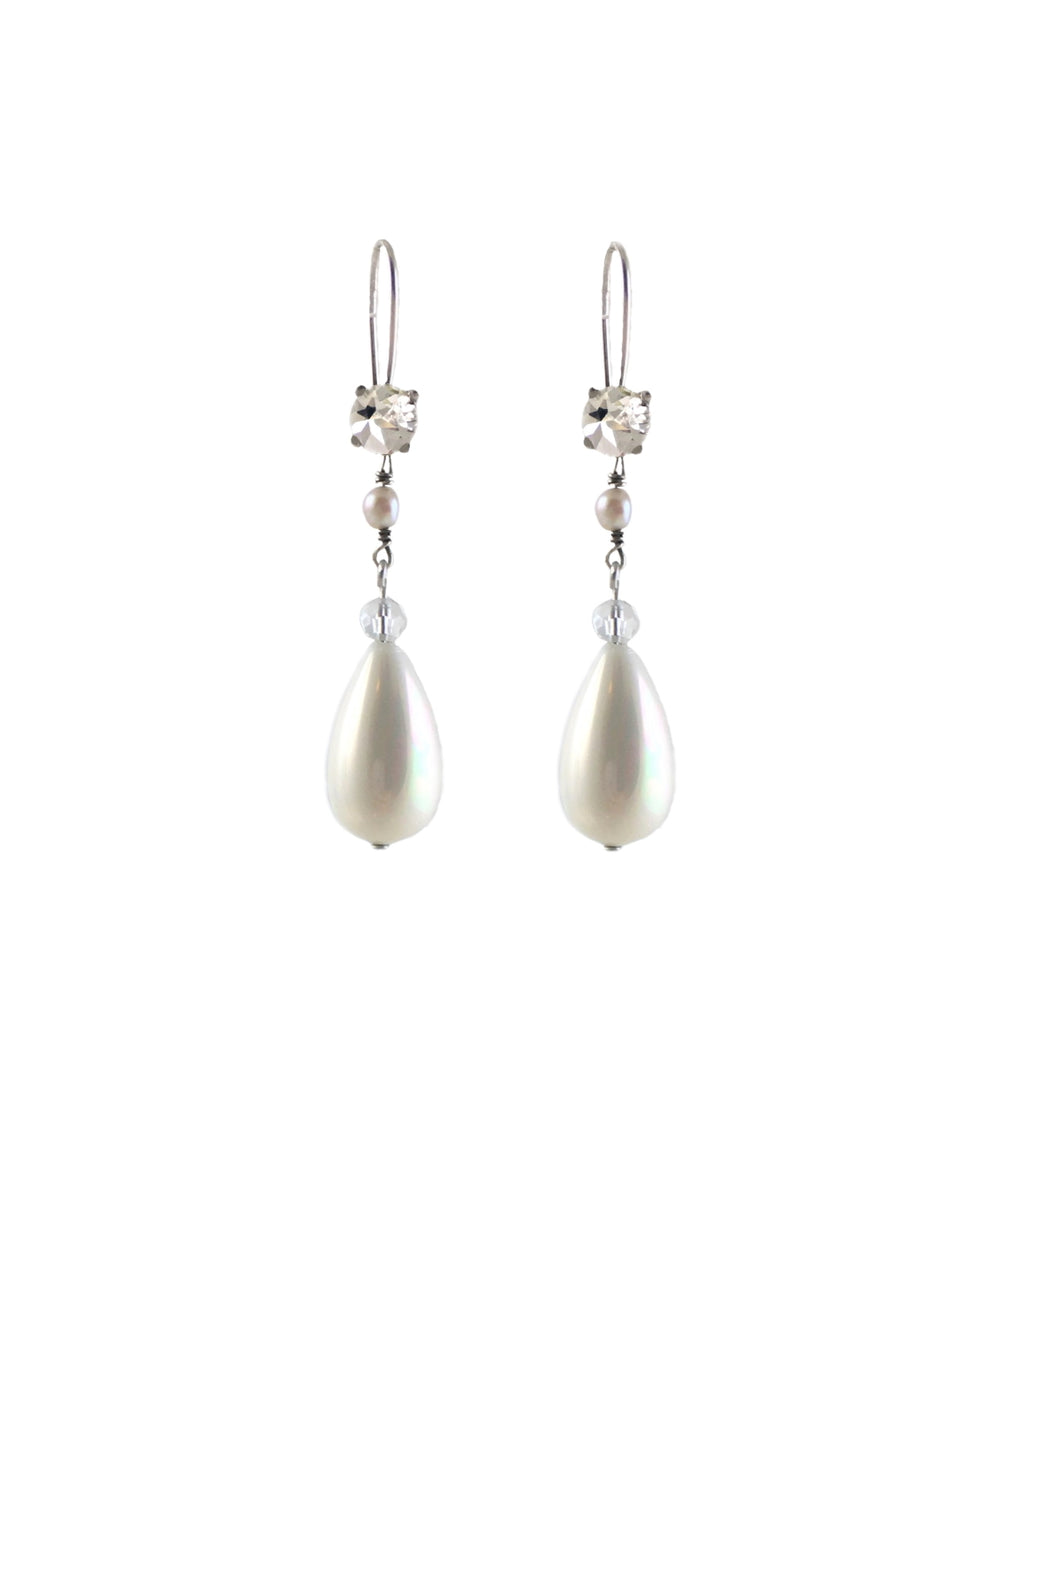 Ada Pearls and Crystal silver earrings